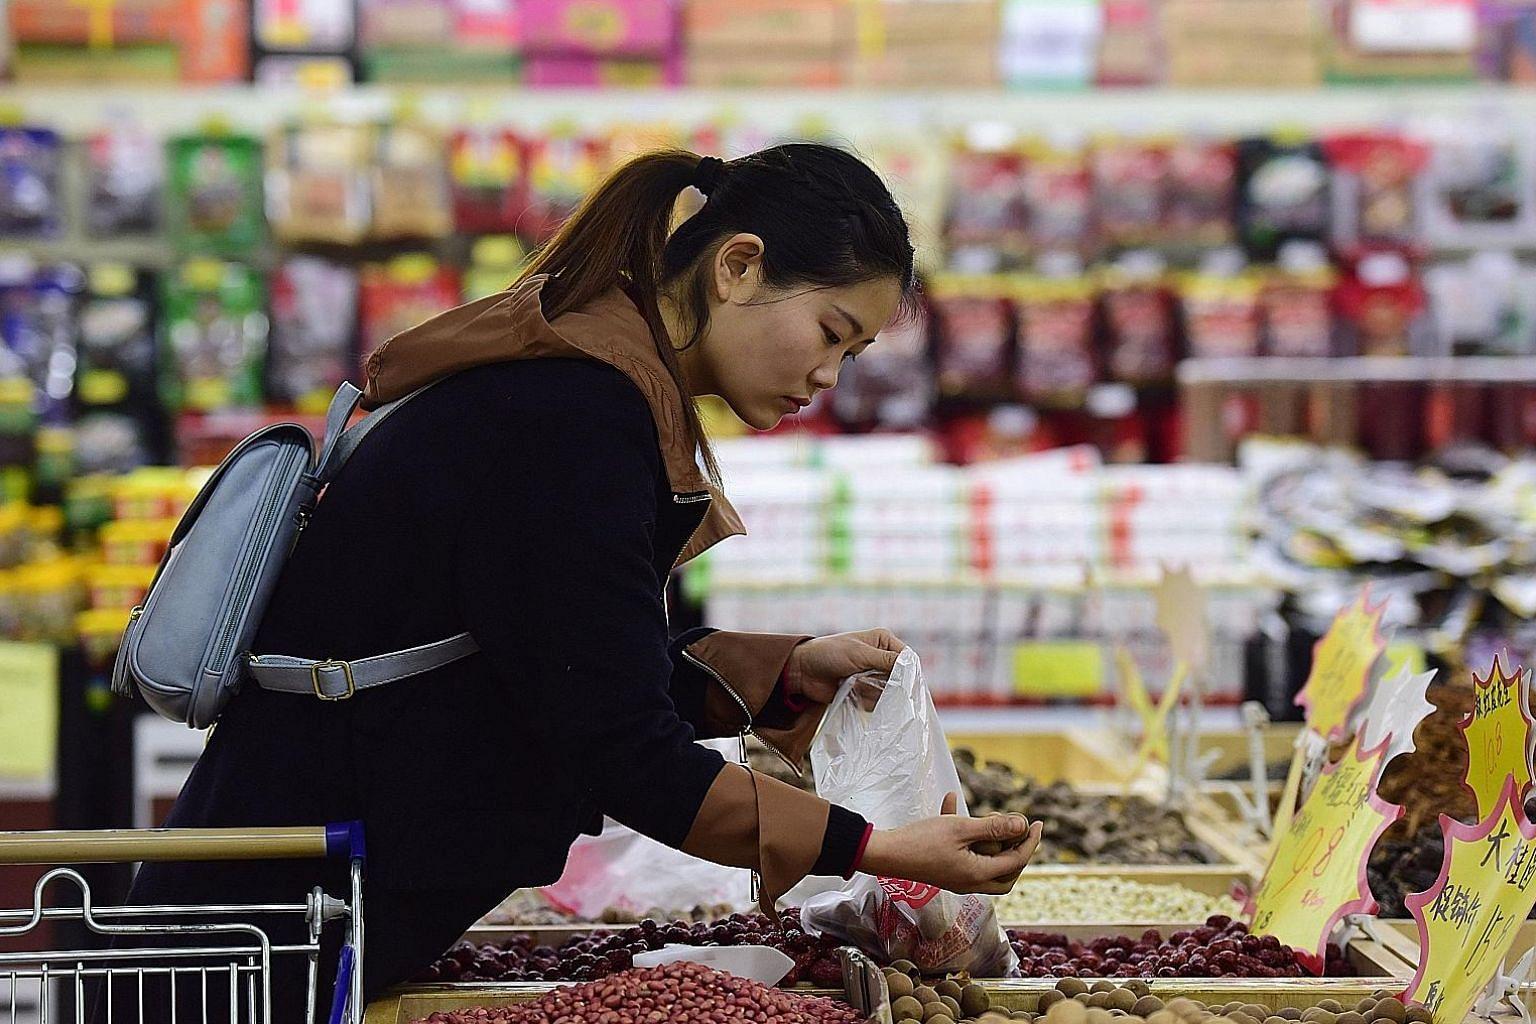 China's consumer inflation picked up to the highest since November 2013, largely due to higher food prices as China celebrated the long Chinese New Year holidays, official data showed yesterday.